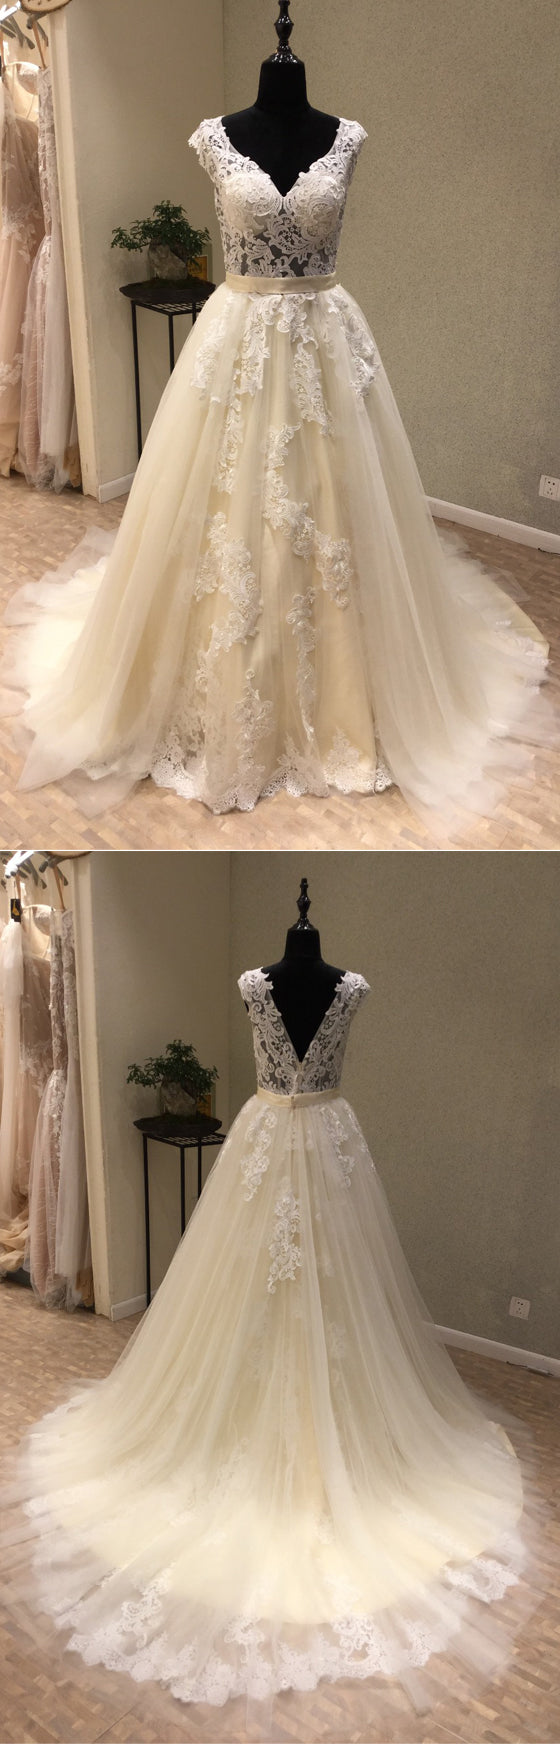 Tulle Applique V Back Formal A Line Long Wedding Dress for Brides, WG1205